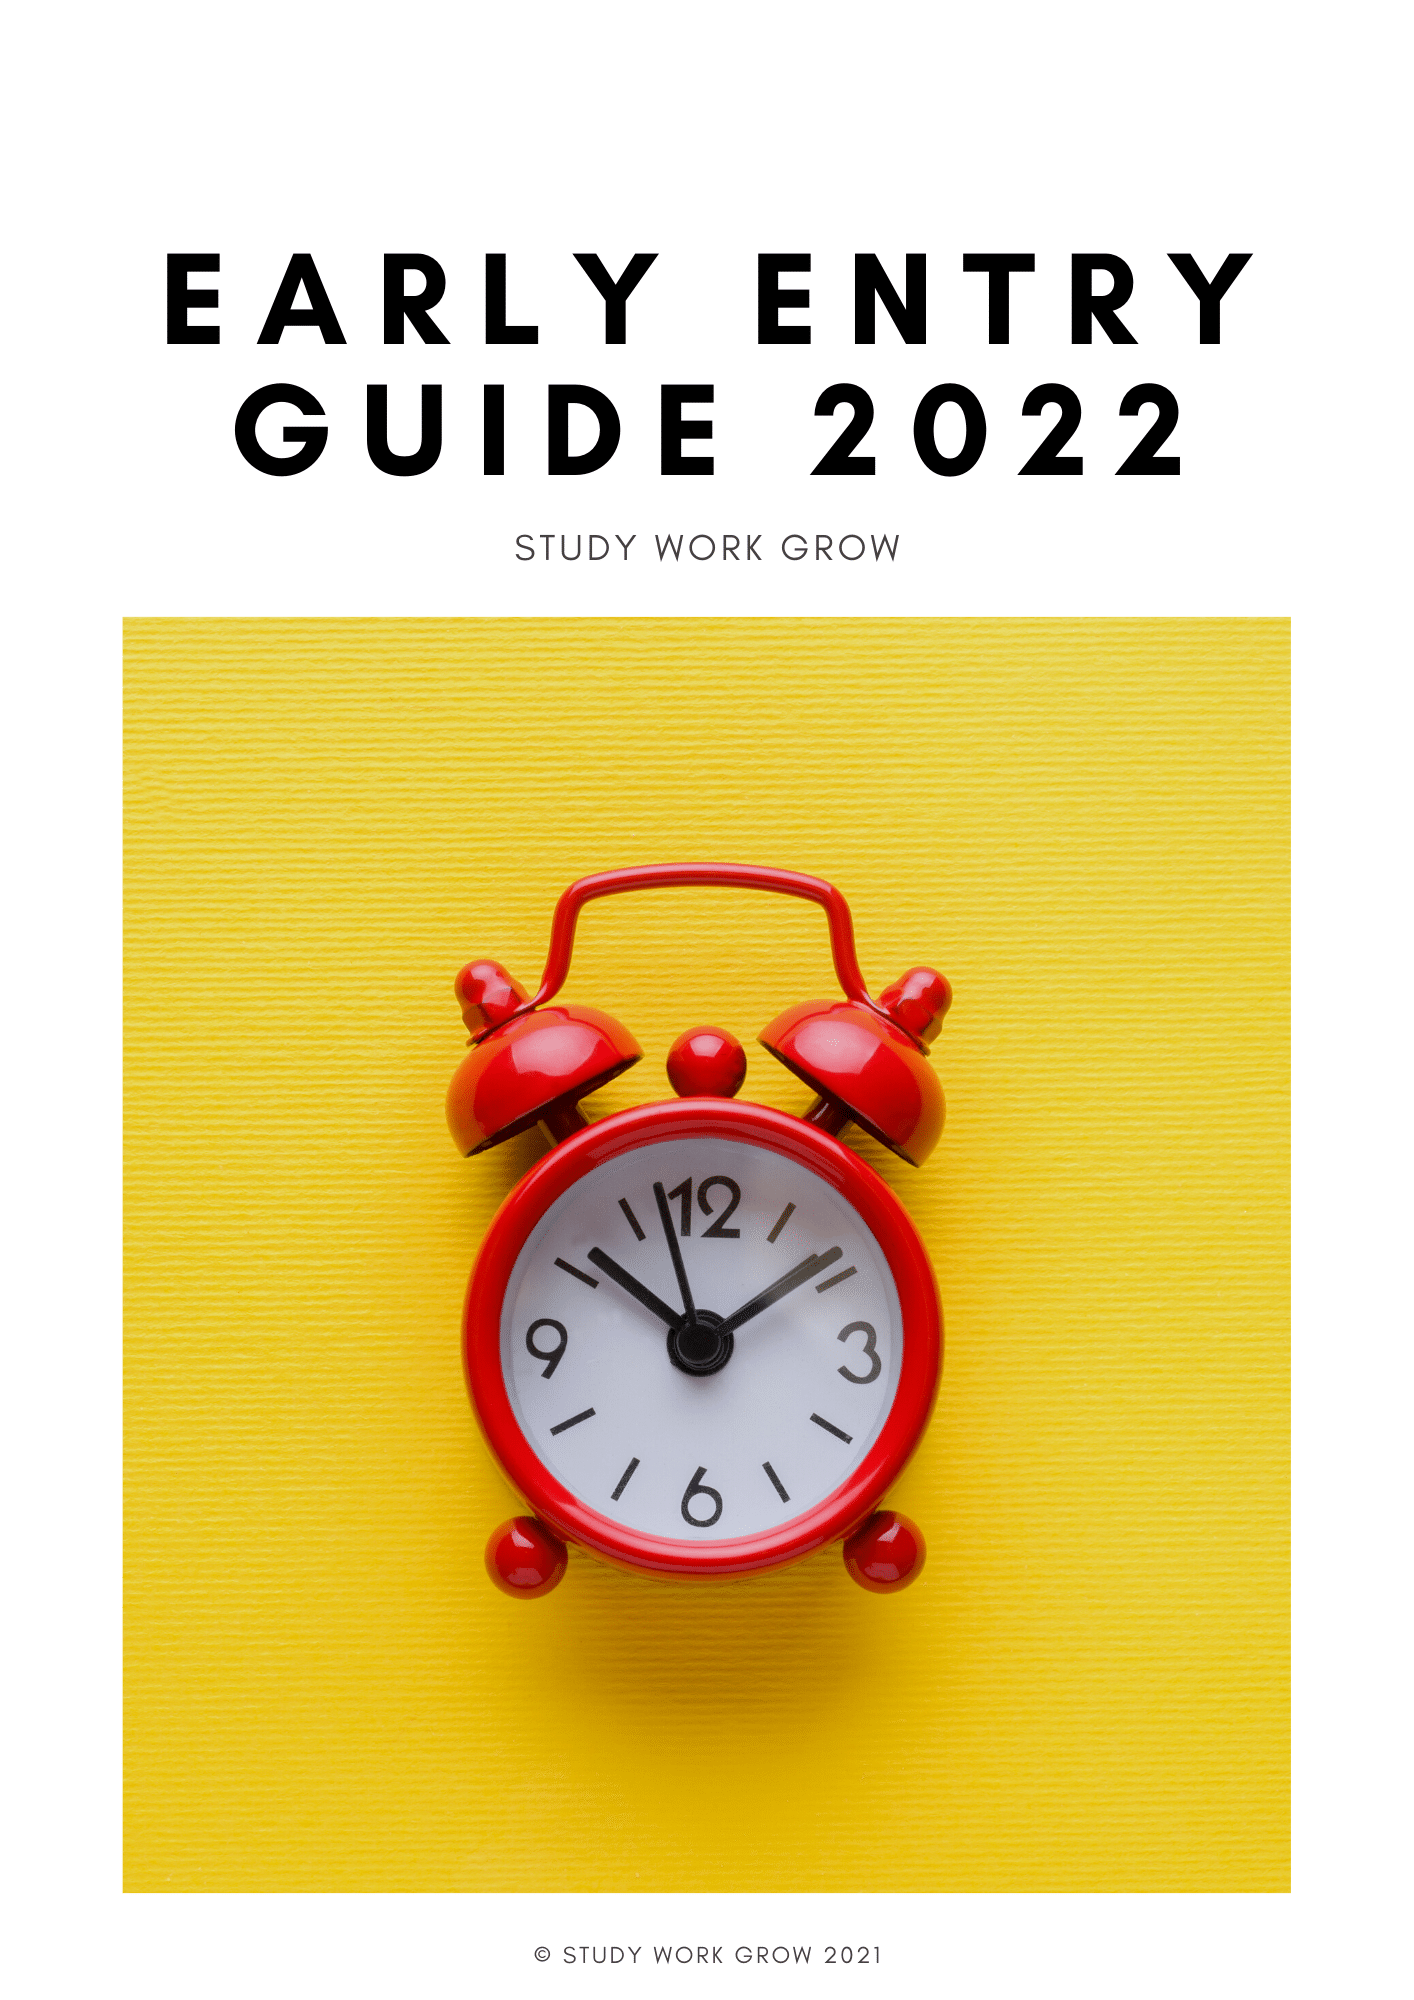 Early Entry Guide 2022